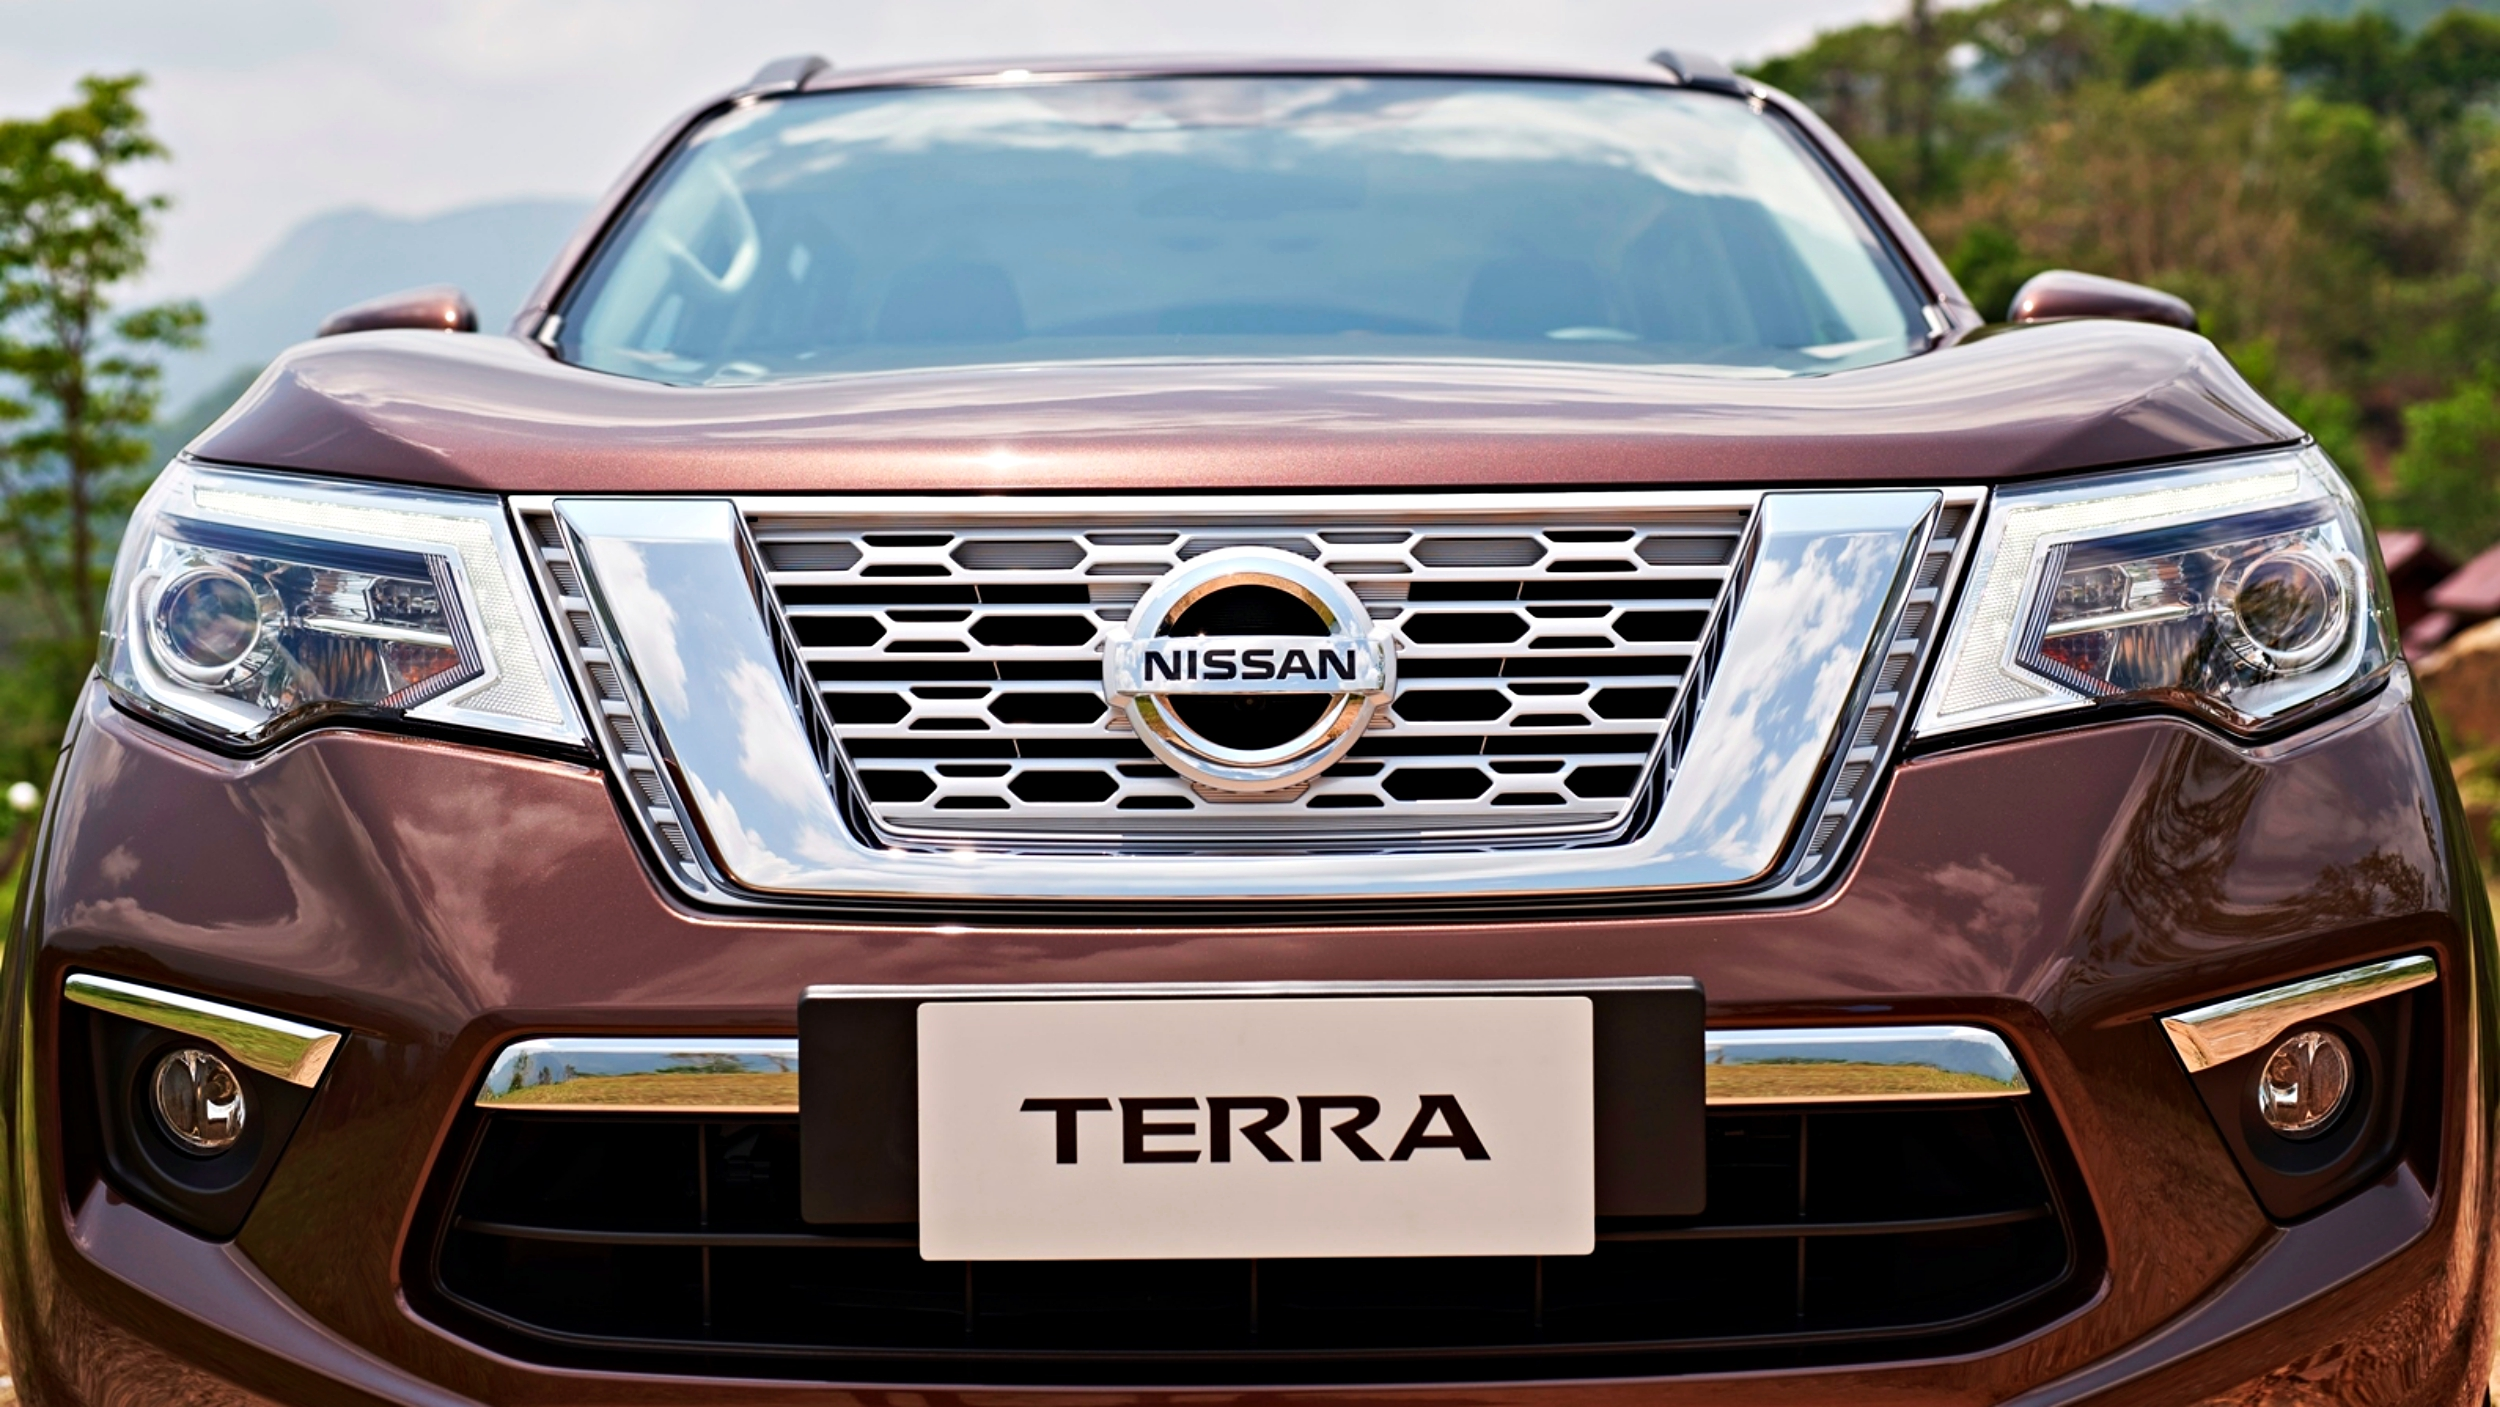 News - Nissan Australia Is Very Intent On The Terra SUV